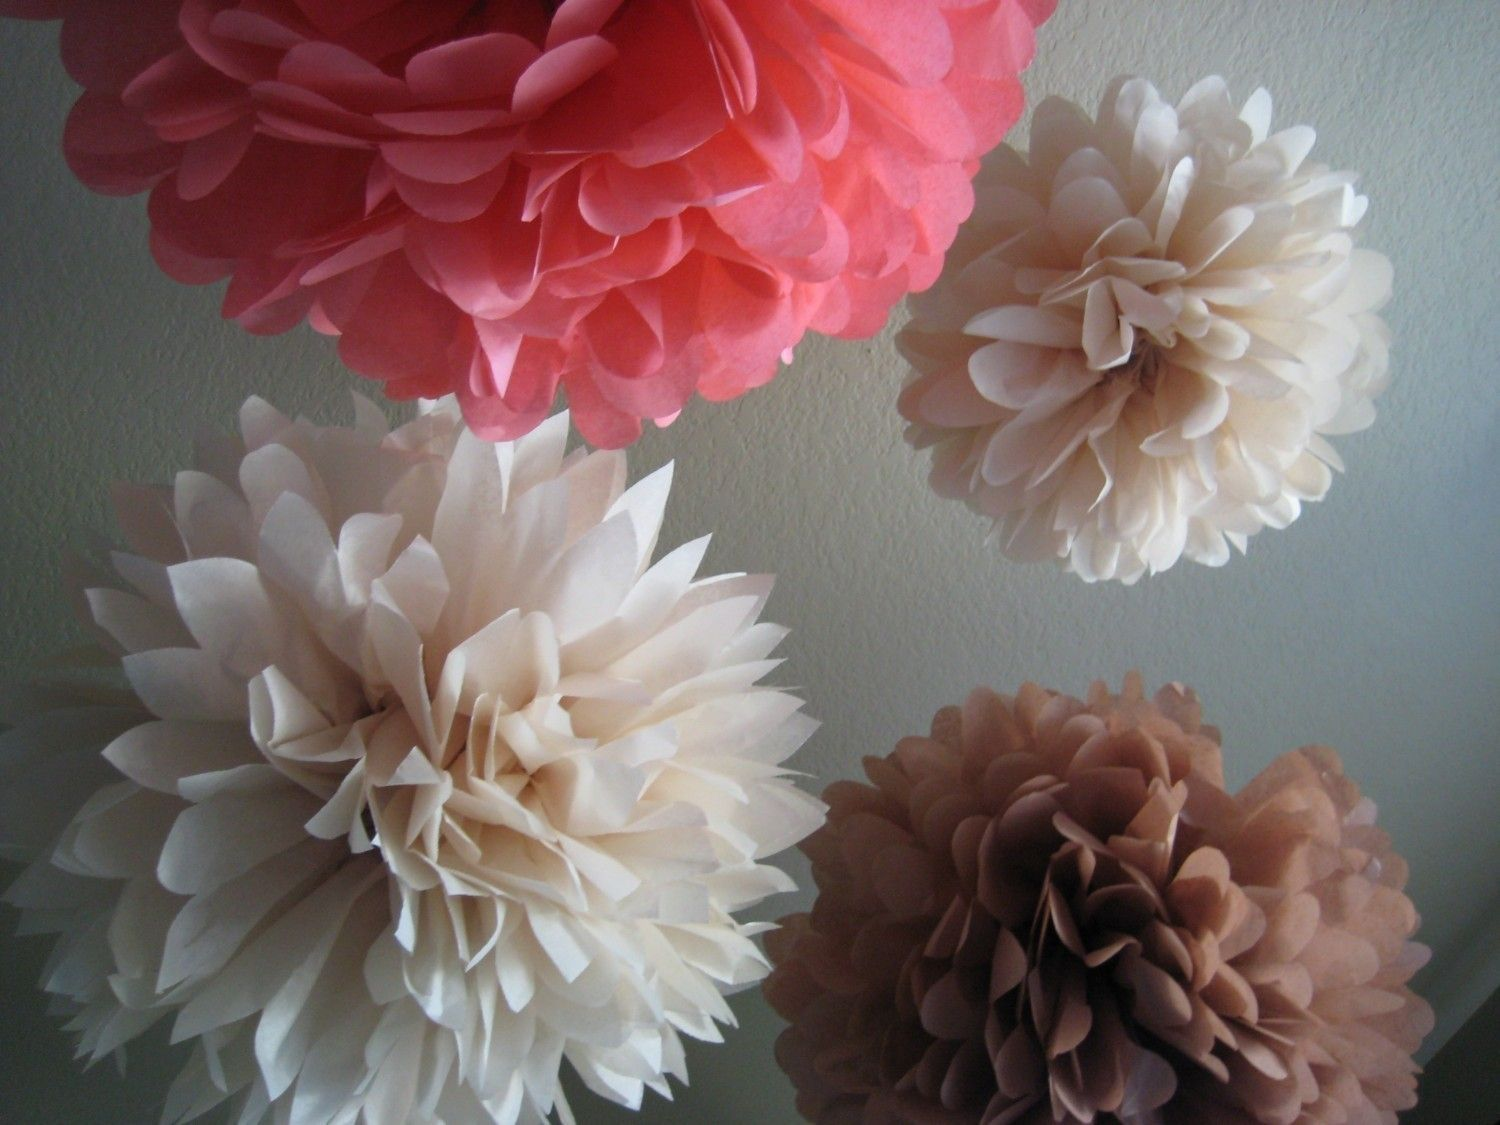 Girl baby shower 5 tissue paper pom pom flower diy decor kit girl baby shower 5 tissue paper pom pom flower diy decor kit frilly paper mightylinksfo Image collections